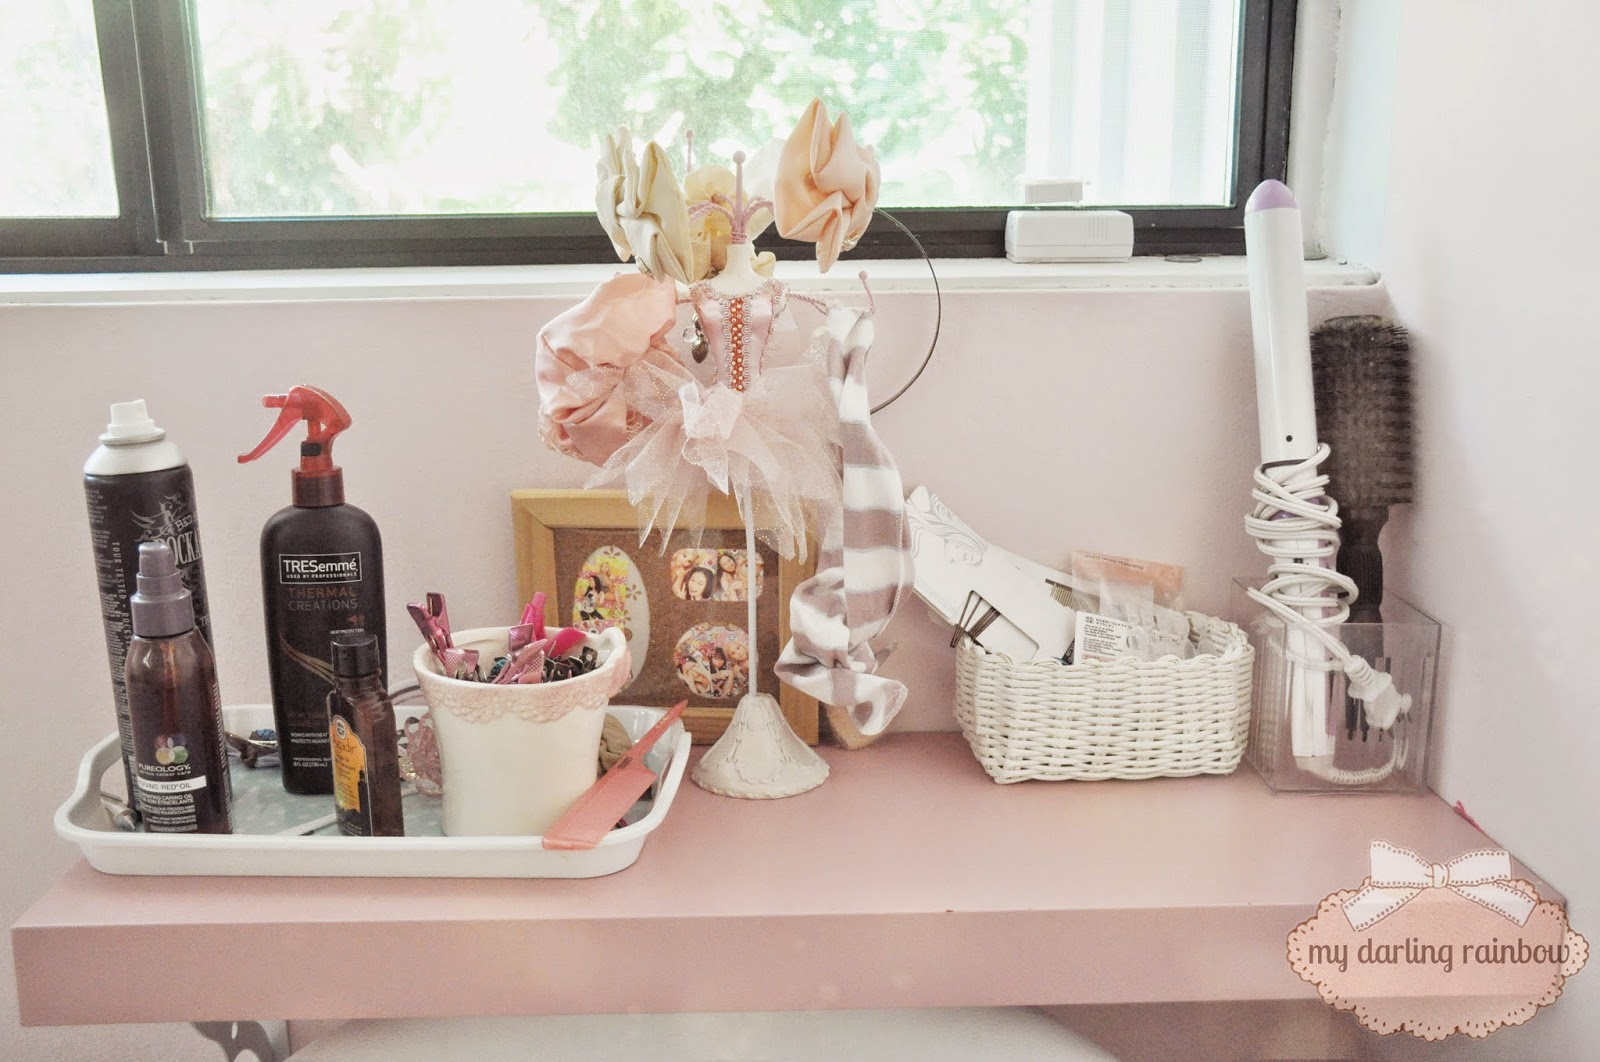 i also turned my little desk into a hair station and put all my little knickknacks onto it for easy access